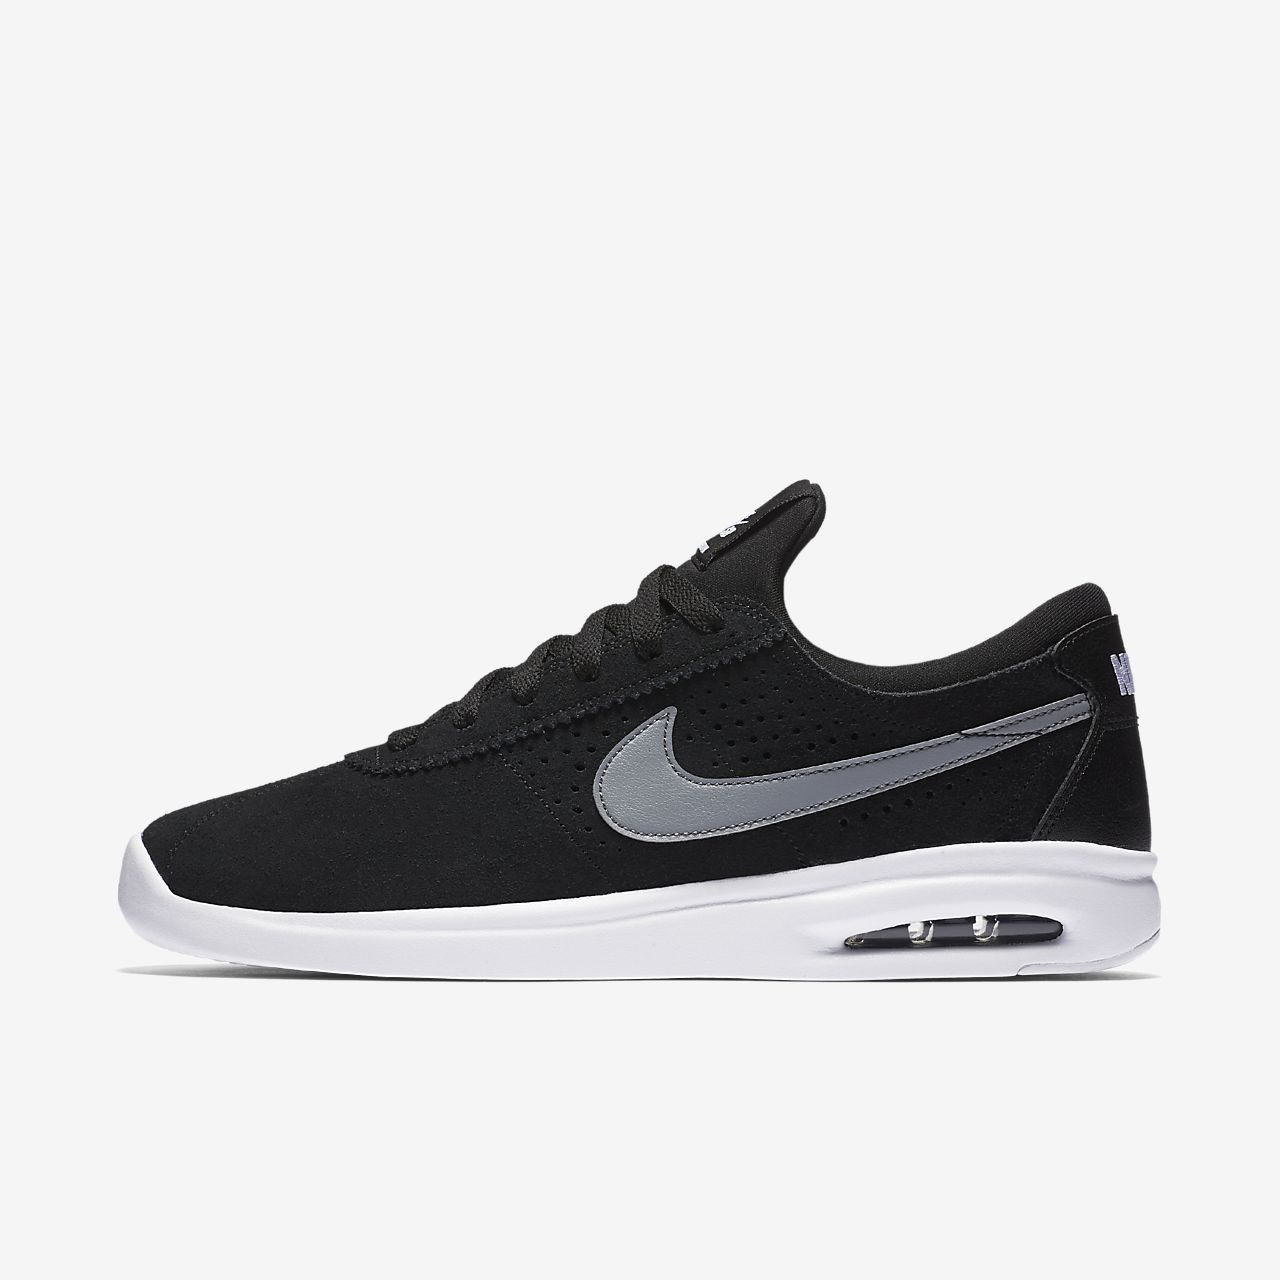 the latest 2a7d5 500b7 Men s Skate Shoe. Nike SB Air Max Bruin Vapor